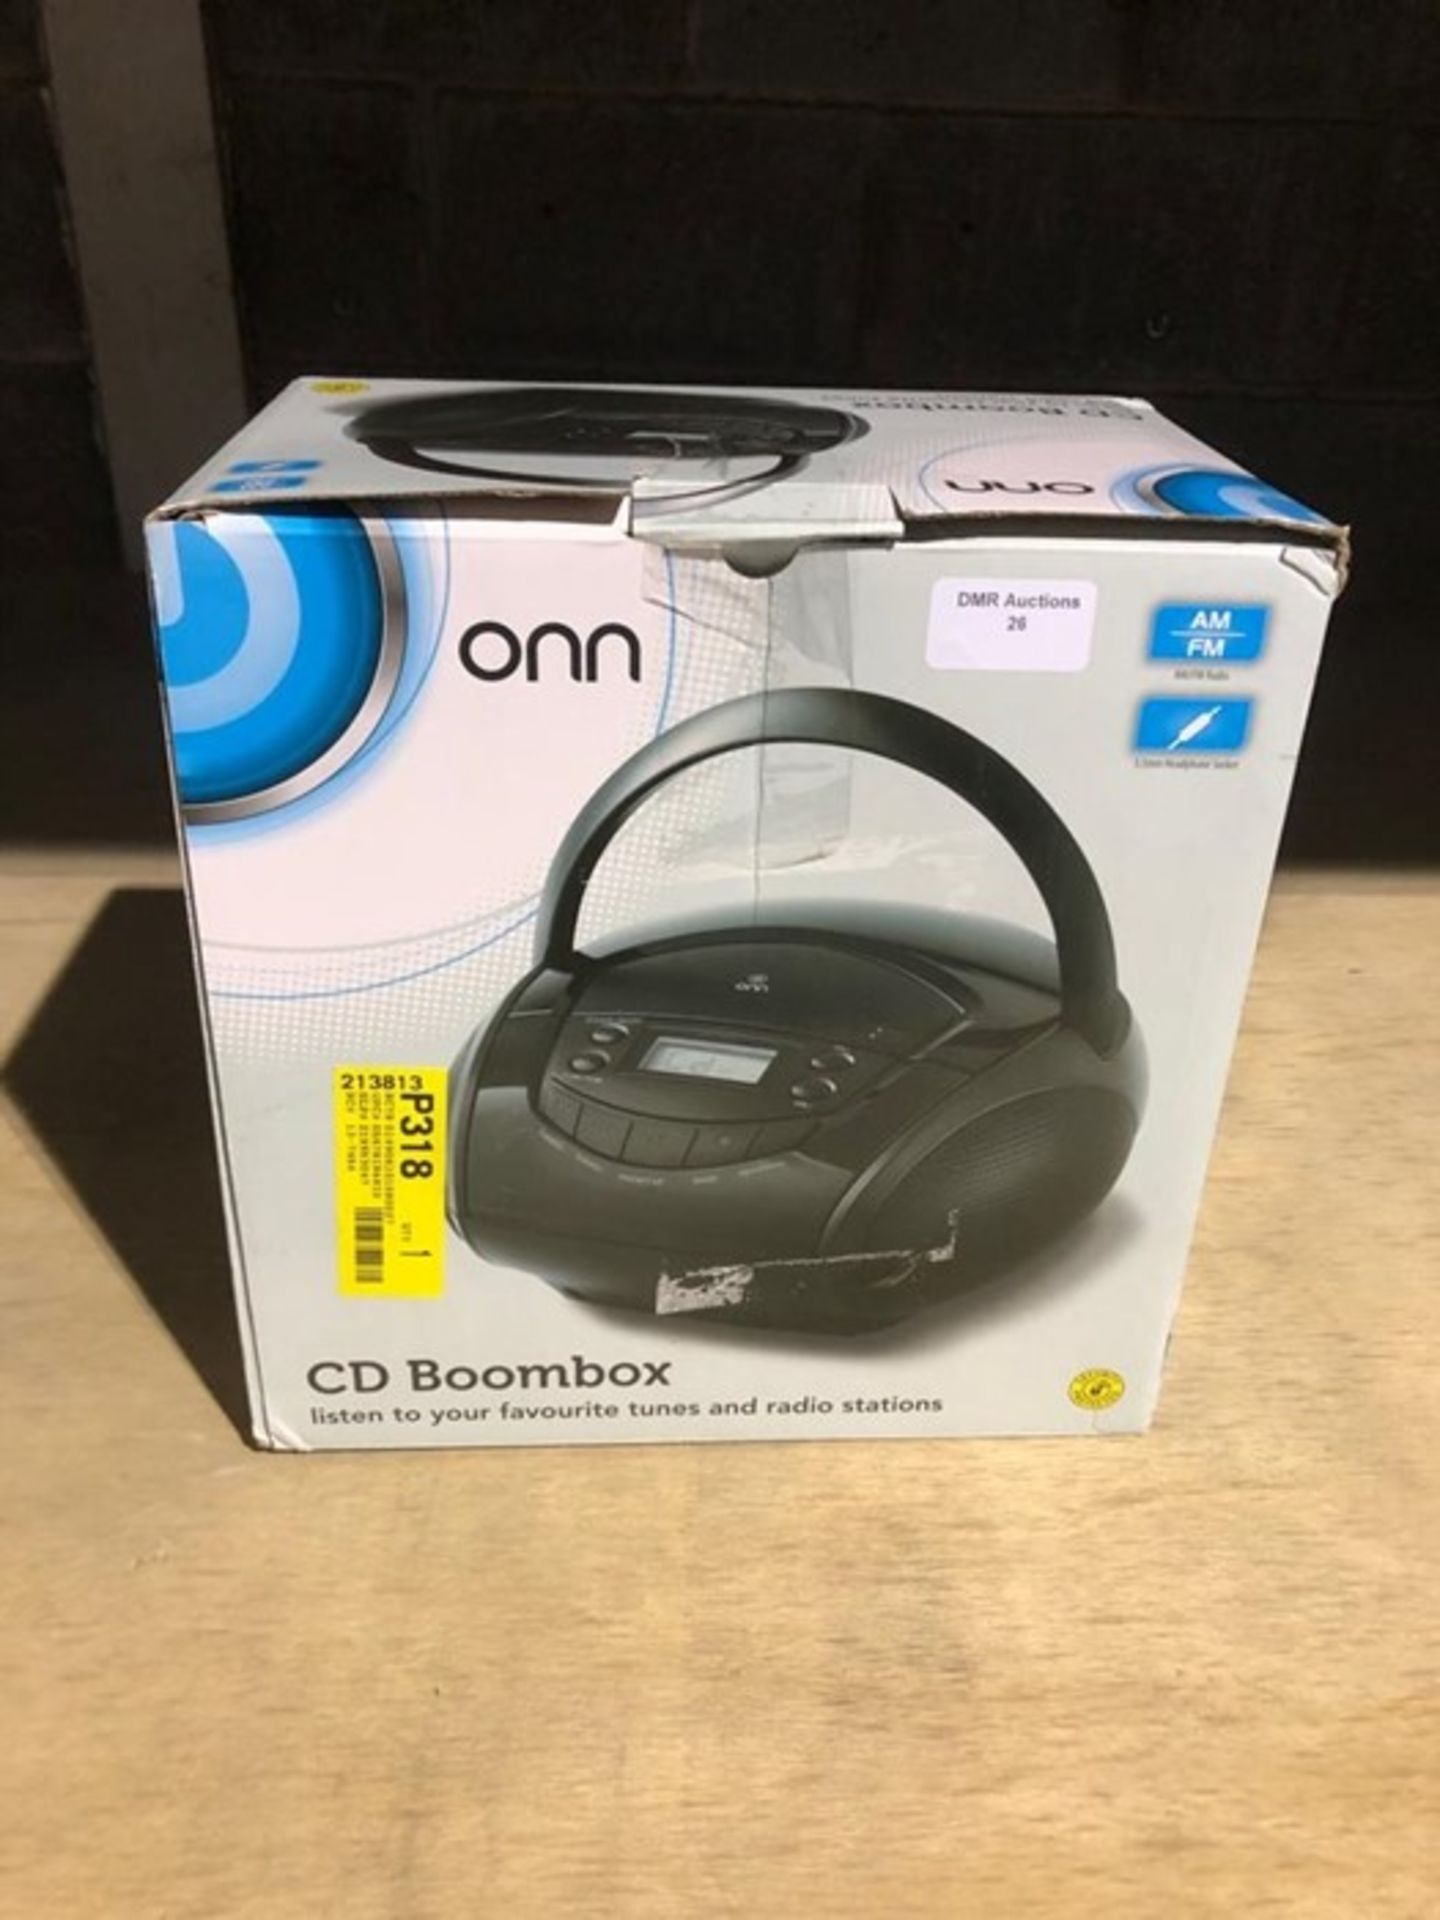 Lot 55 - 1 BOXED ONN CD BOOMBOX IN BLACK / RRP £20.00 - BL -3813 (VIEWING HIGHLY RECOMMENDED)